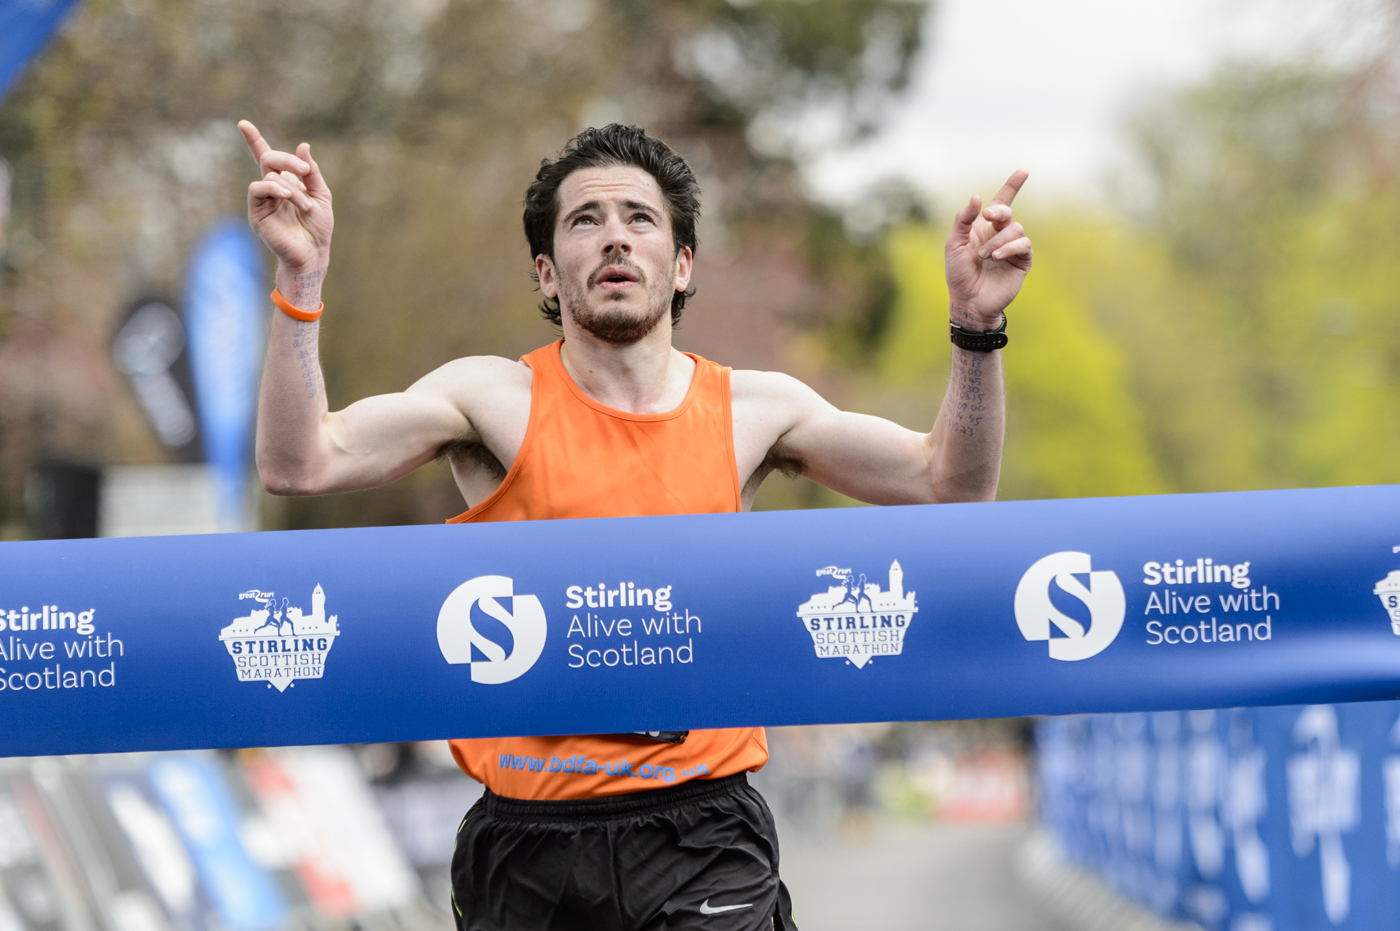 Stirling stages Scottish Marathon Champs